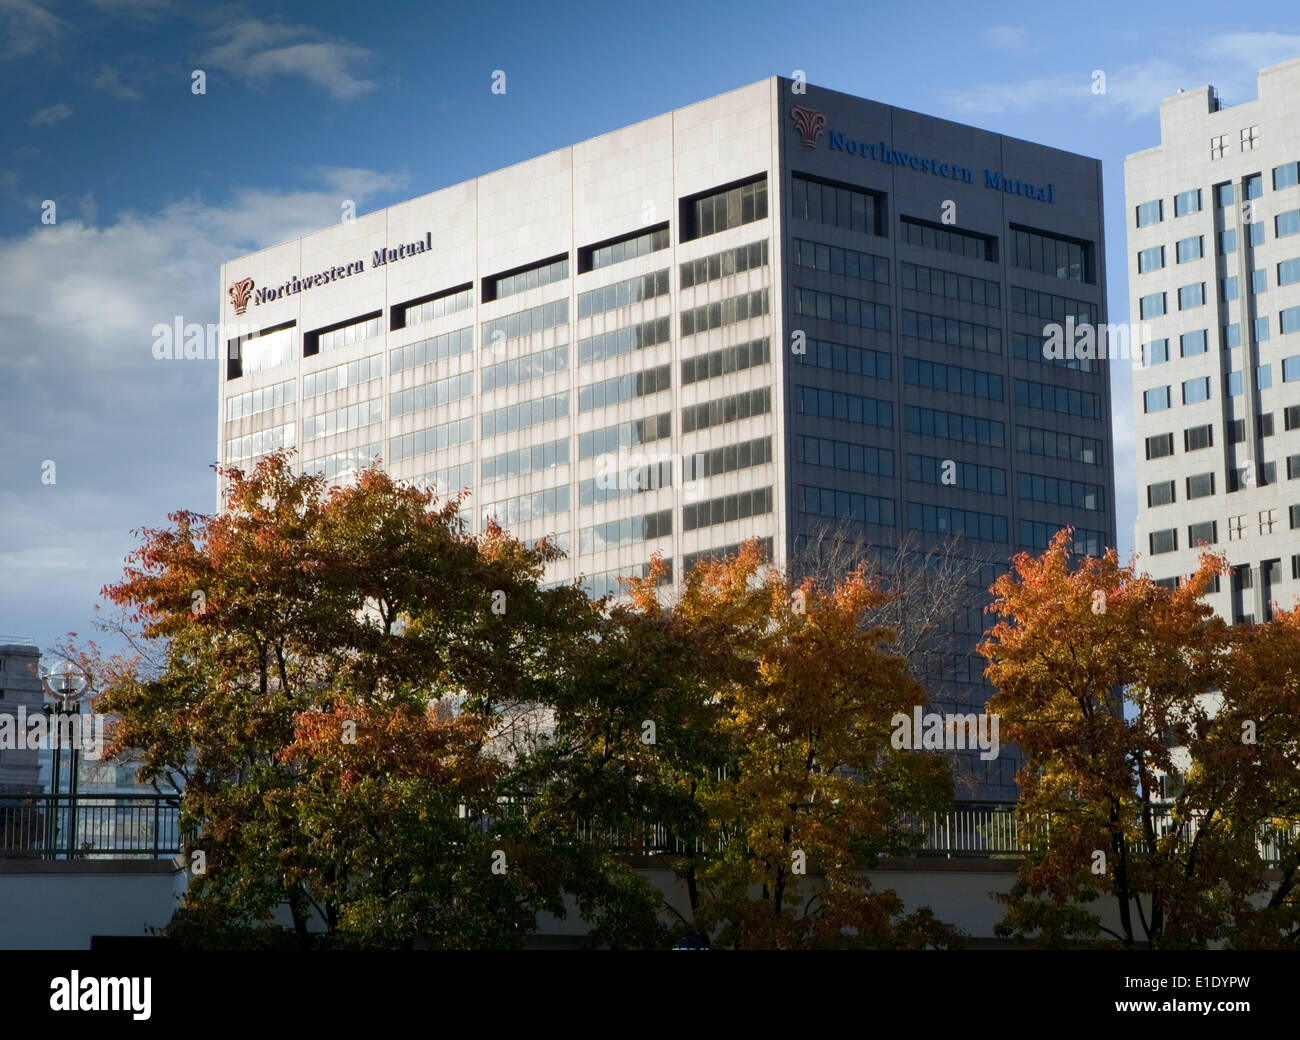 A view of the Northwestern Mutual headquarters in Milwaukee, Wisconsin - Stock Image